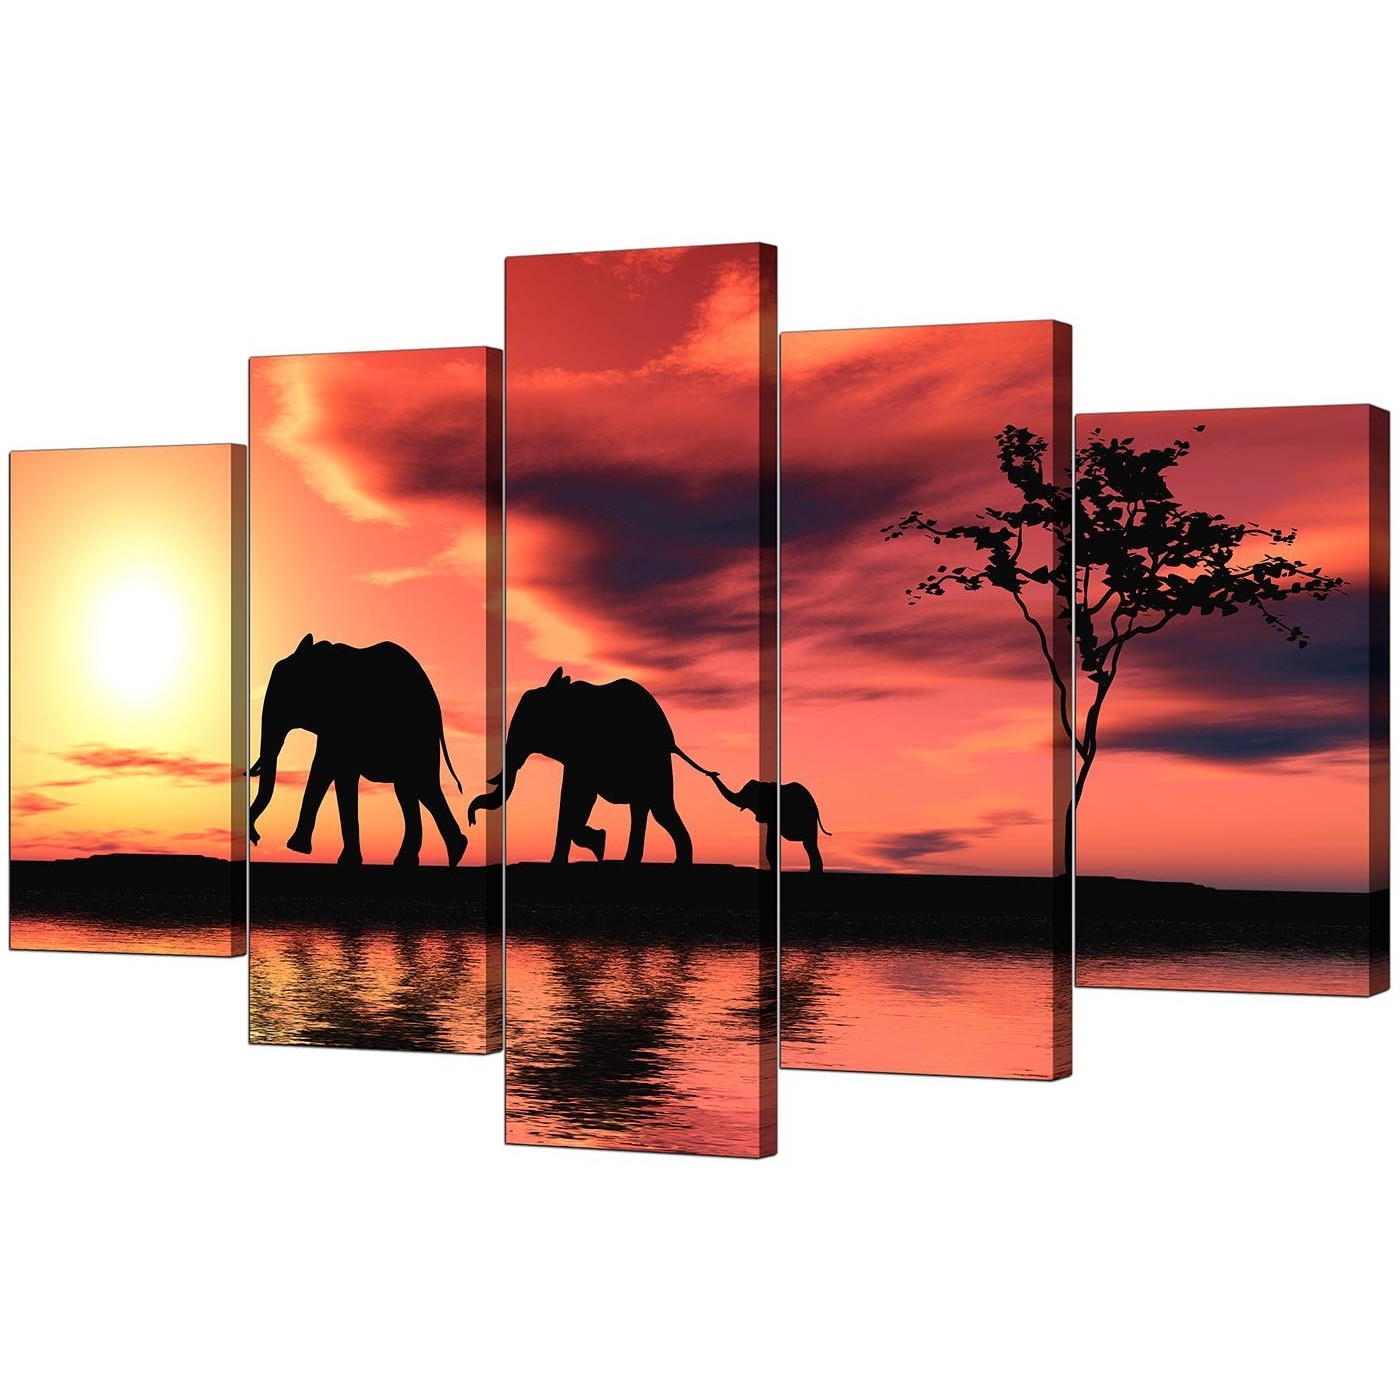 Five Piece Canvas Wall Art Throughout Most Current Extra Large Elephants Canvas Prints 5 Piece In Orange (View 9 of 15)